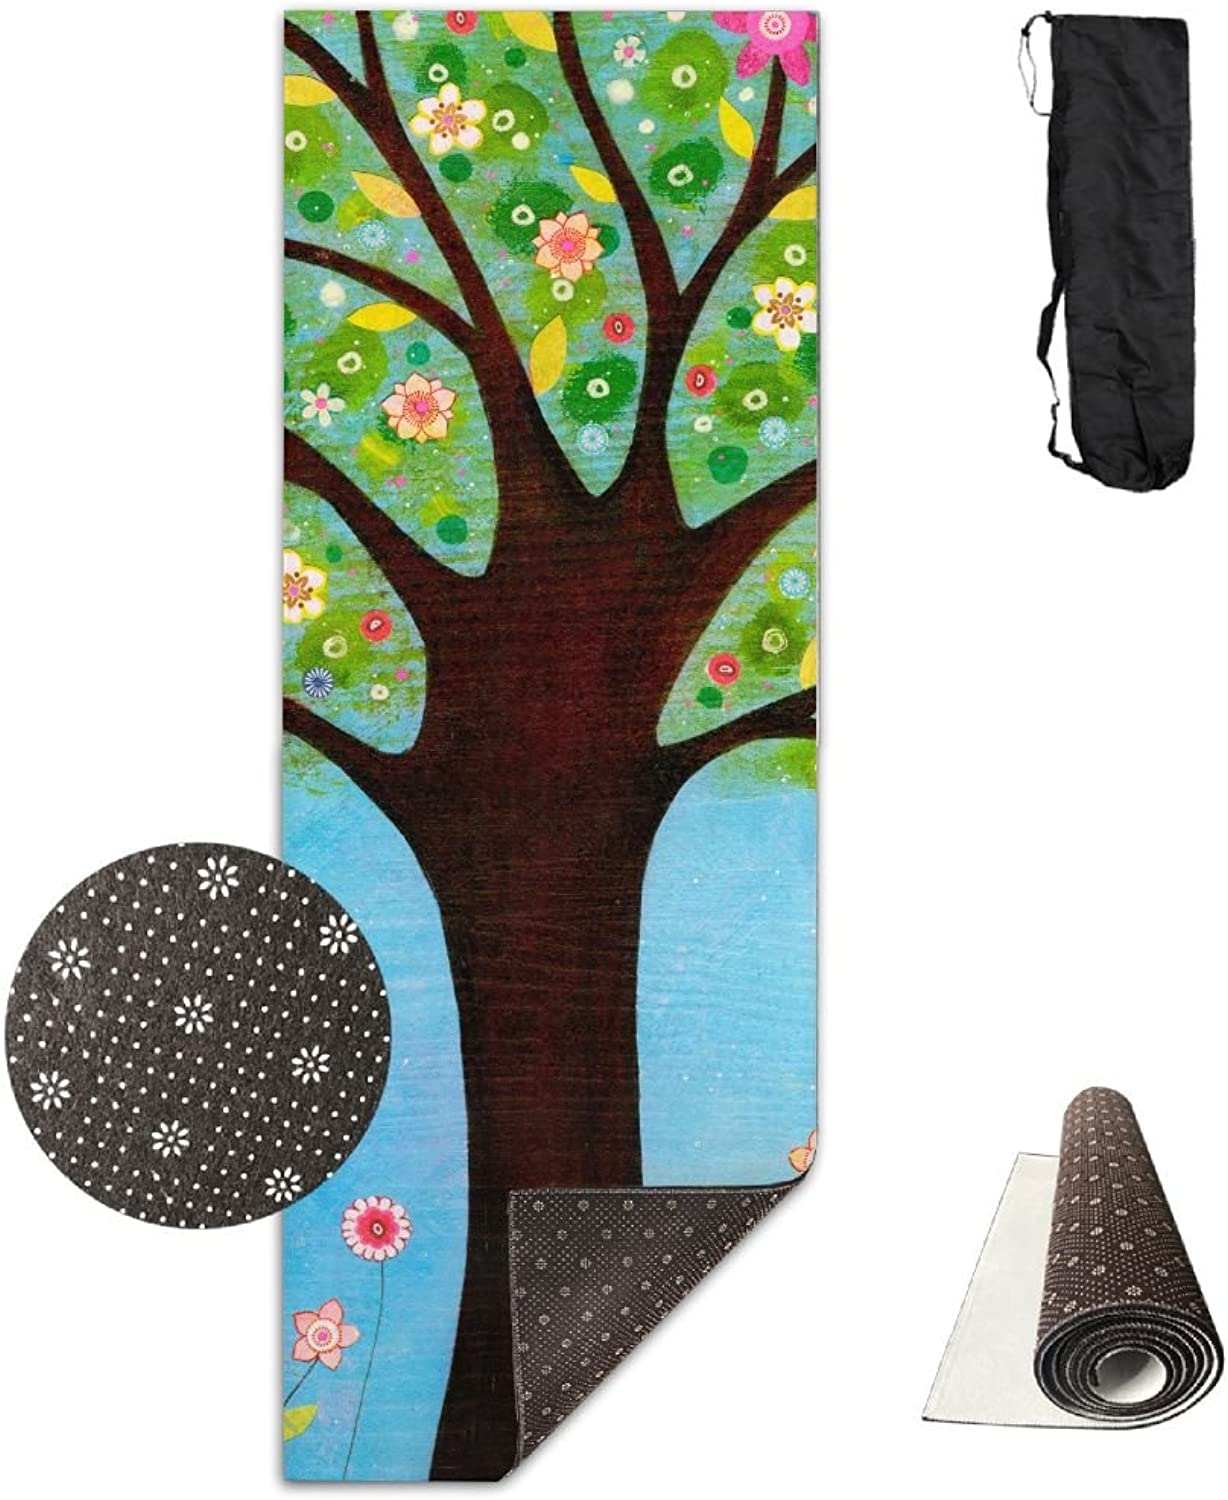 Yoga Mat Non Slip 24  X 71  Exercise Mats Sunlight Flowers Tree Premium Fitness Pilates Carrying Strap